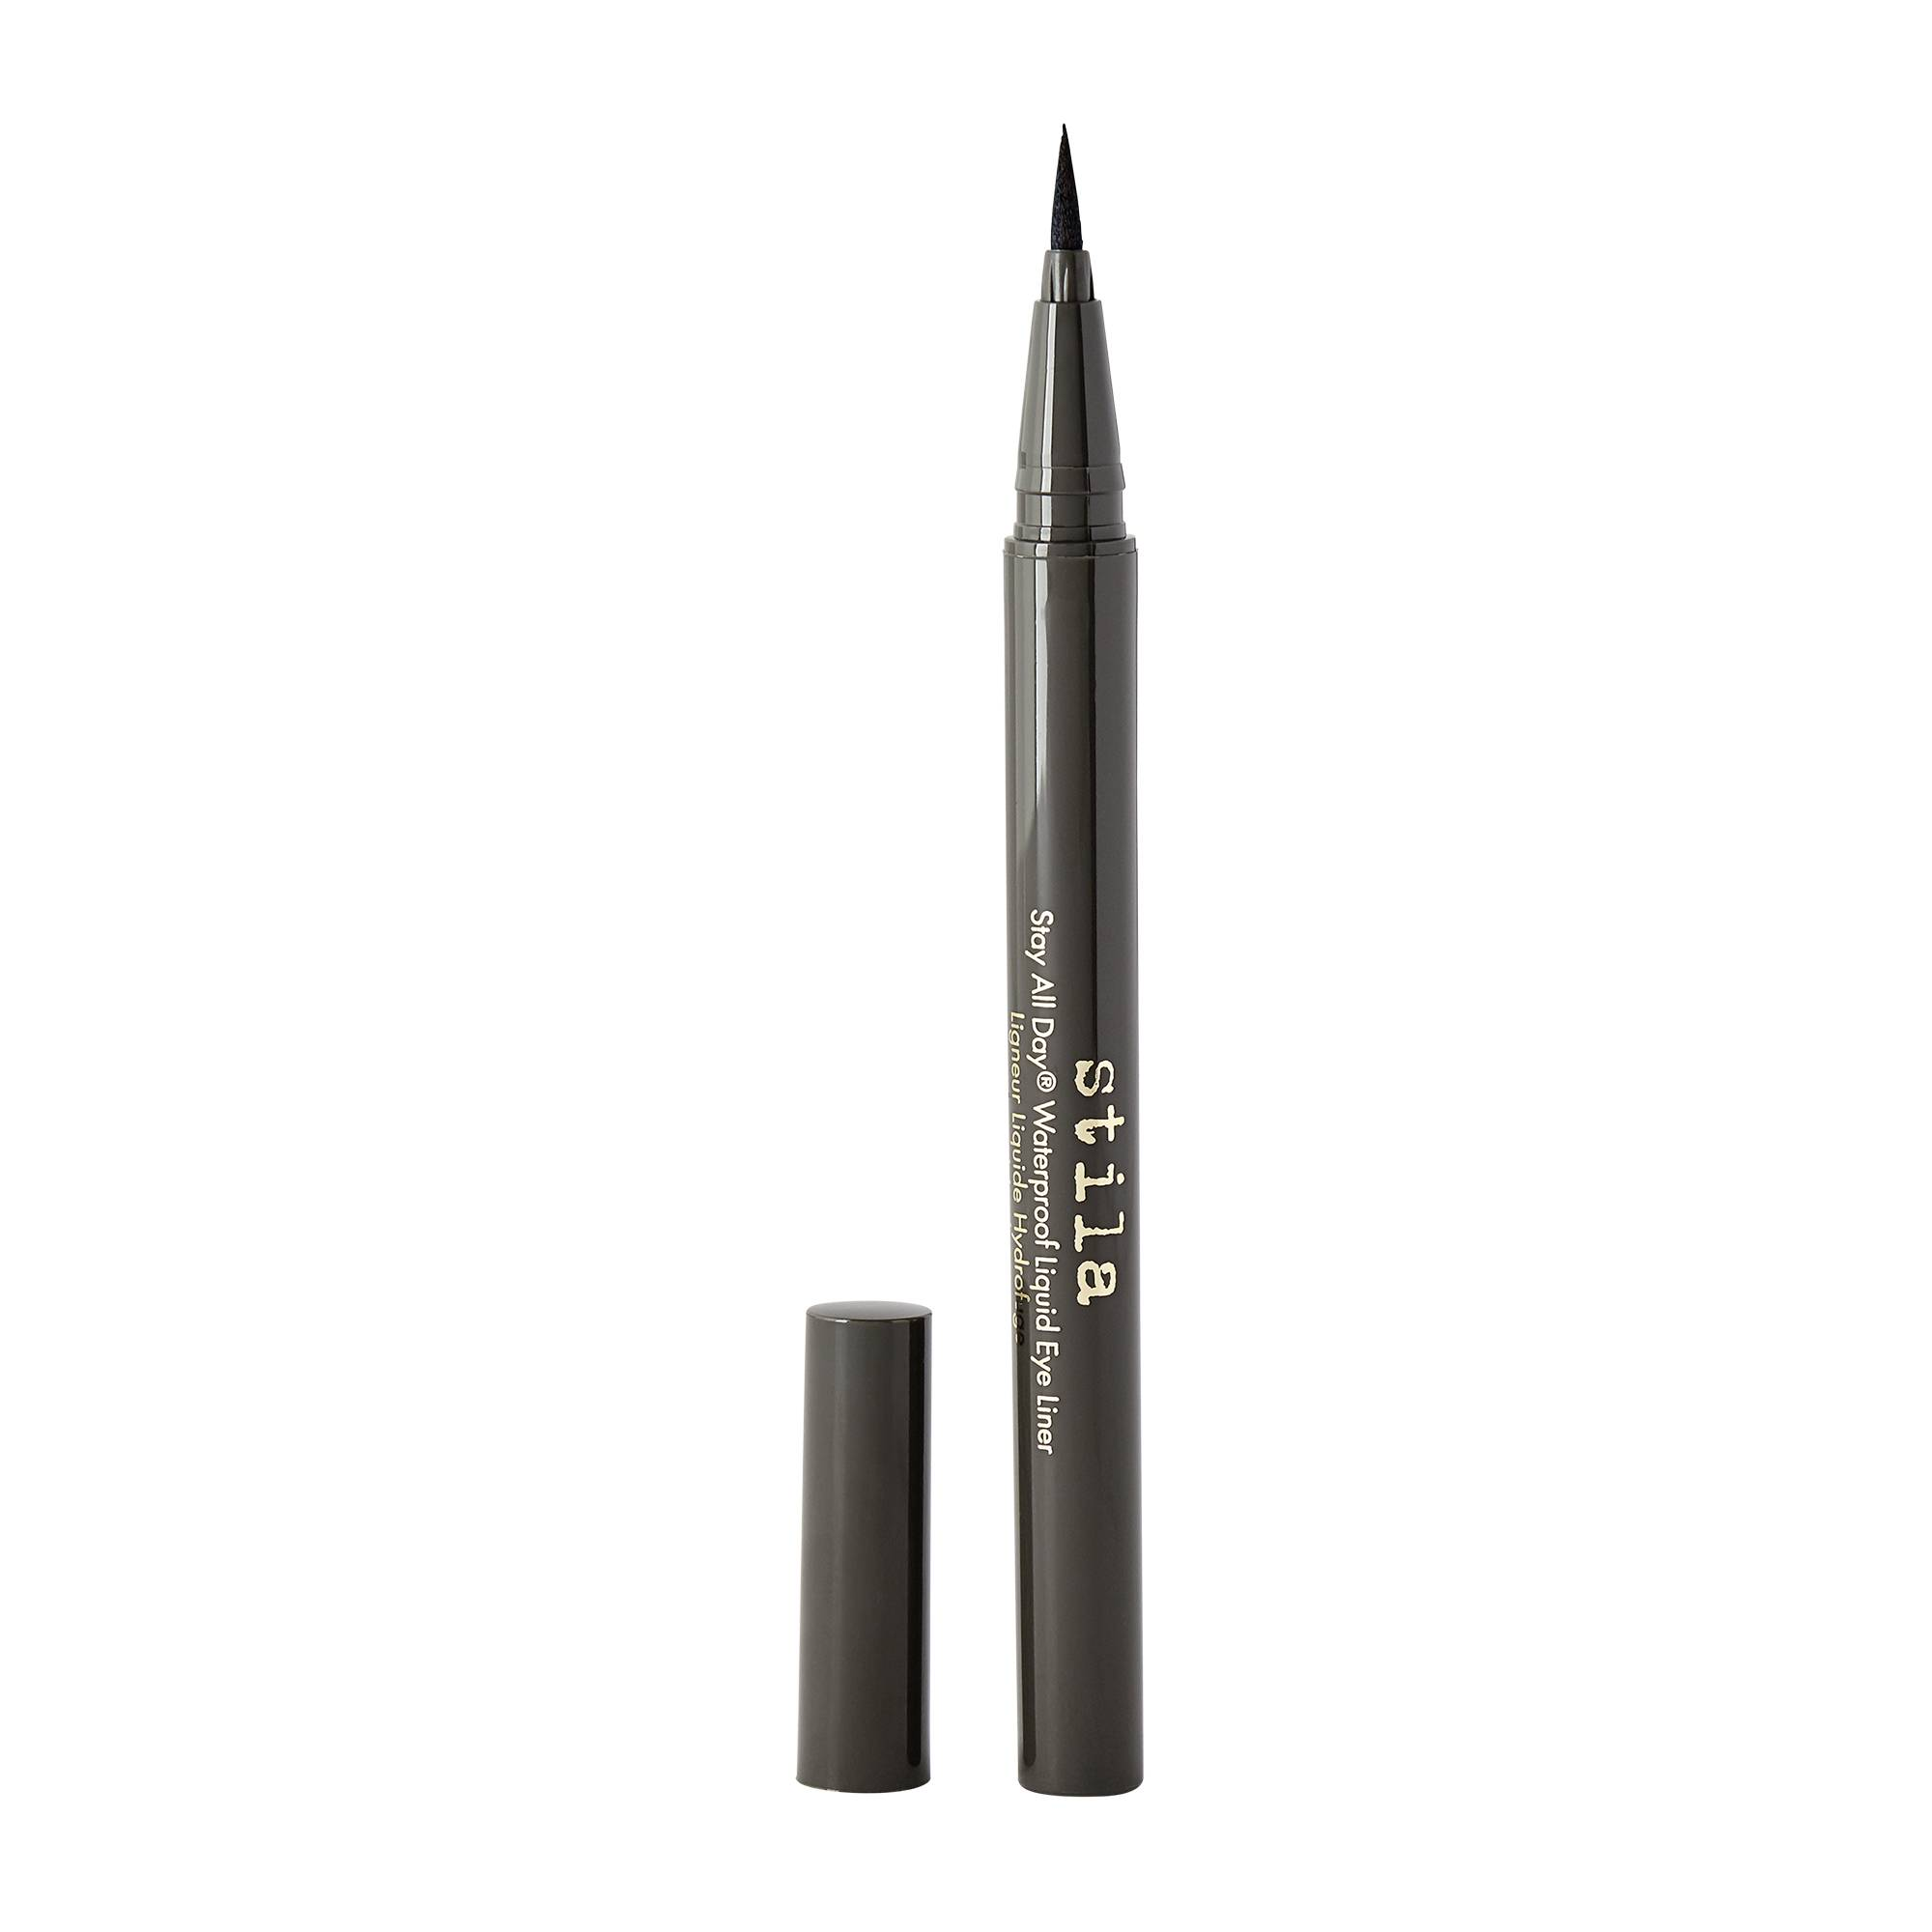 Stila Stay All Day Waterproof Liquid Eye Liner Intense Labradorite 0.5ml